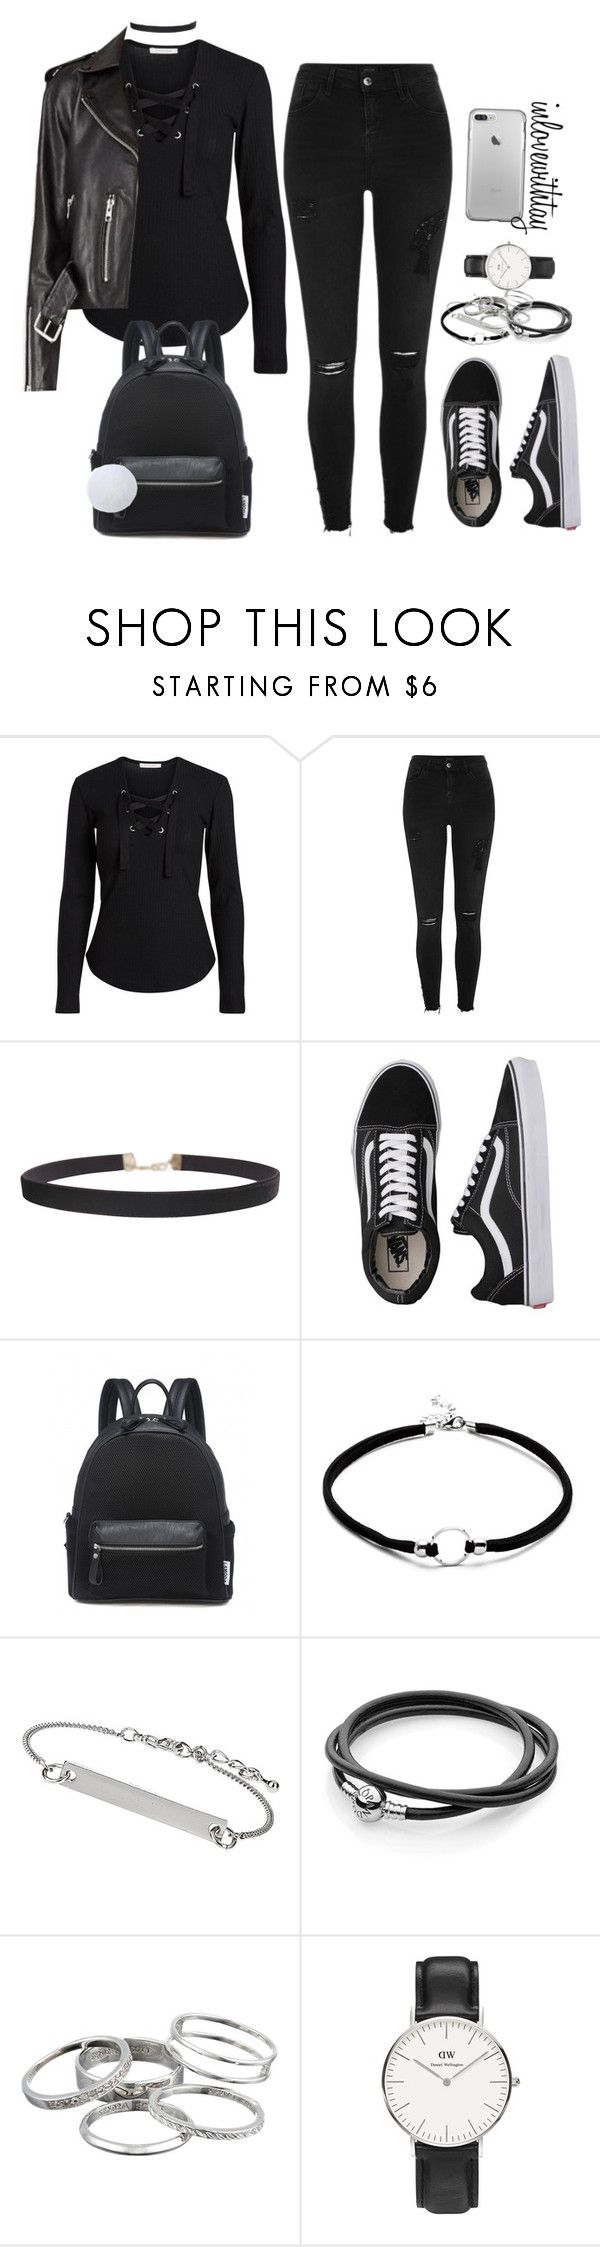 17❤ by inlovewithtay on Polyvore featuring mode, River Island, Vans, Daniel Wellington, Kendra Scott, Humble Chic and Topshop